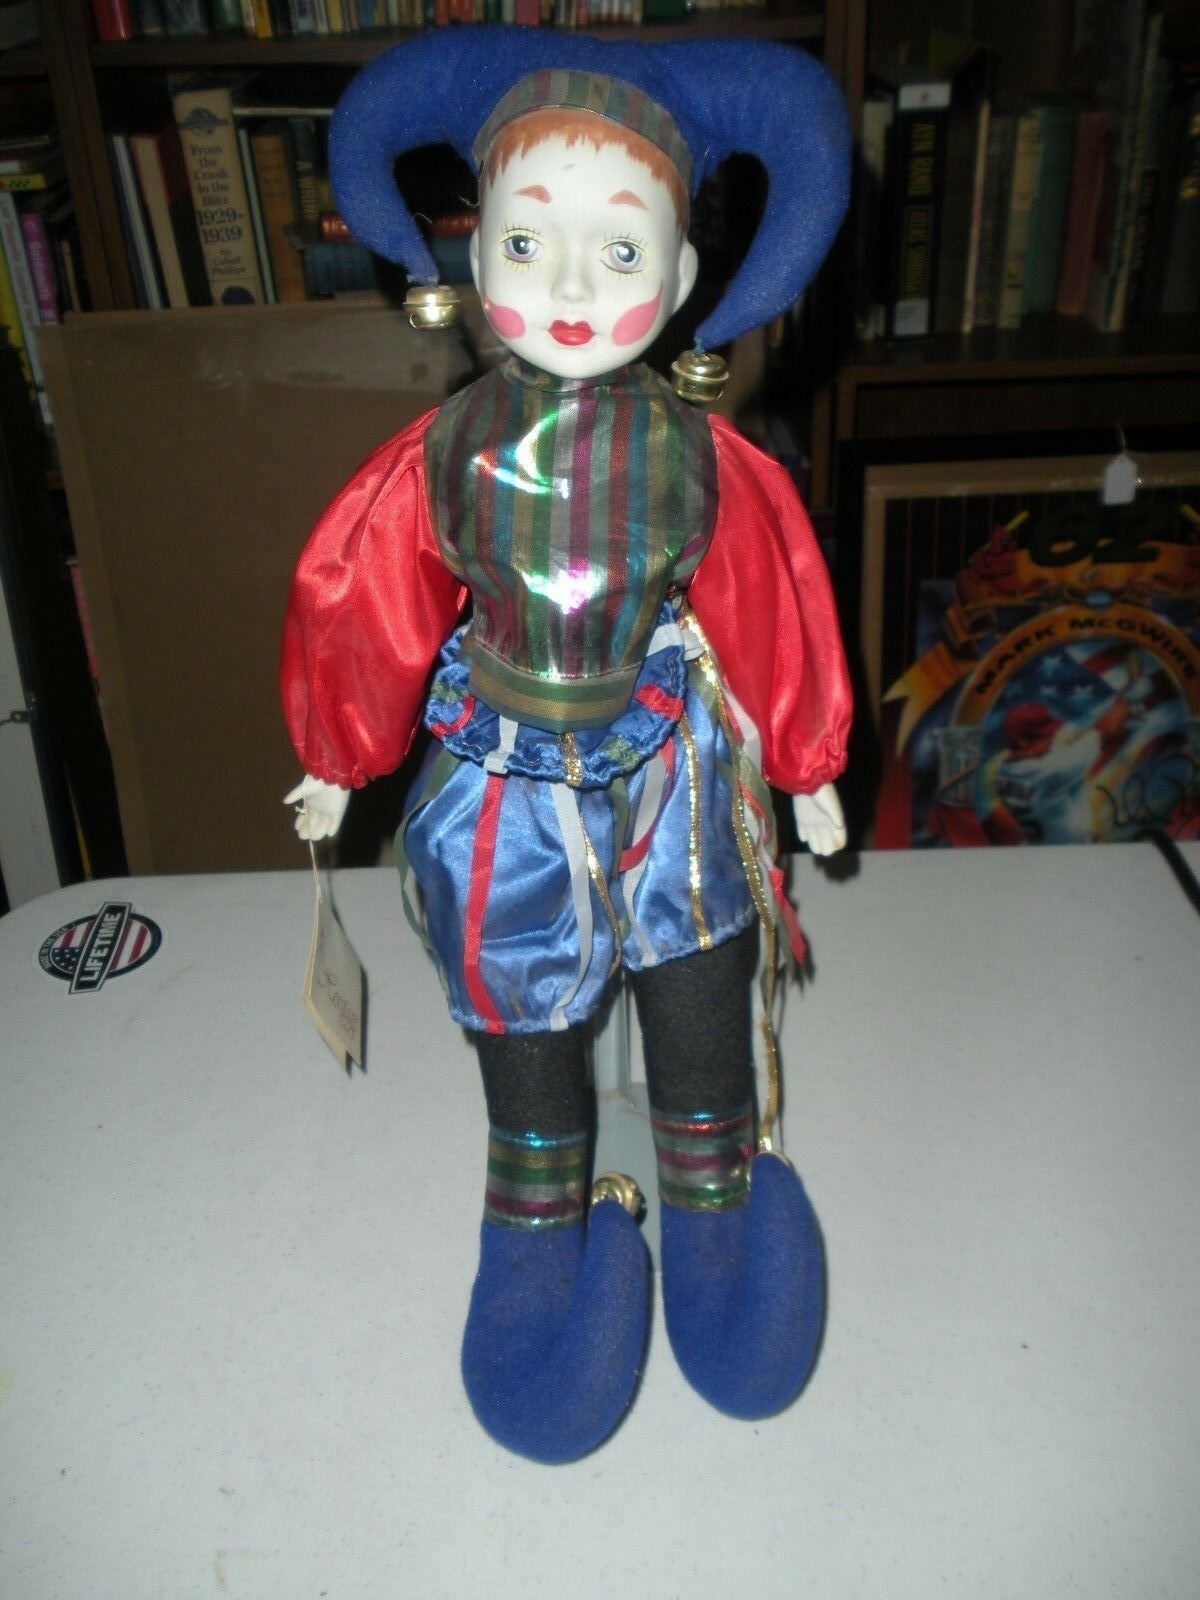 Jester Bisque Porcelain Clown Doll 18  Tall On a Stand Heritage Doll with Tag